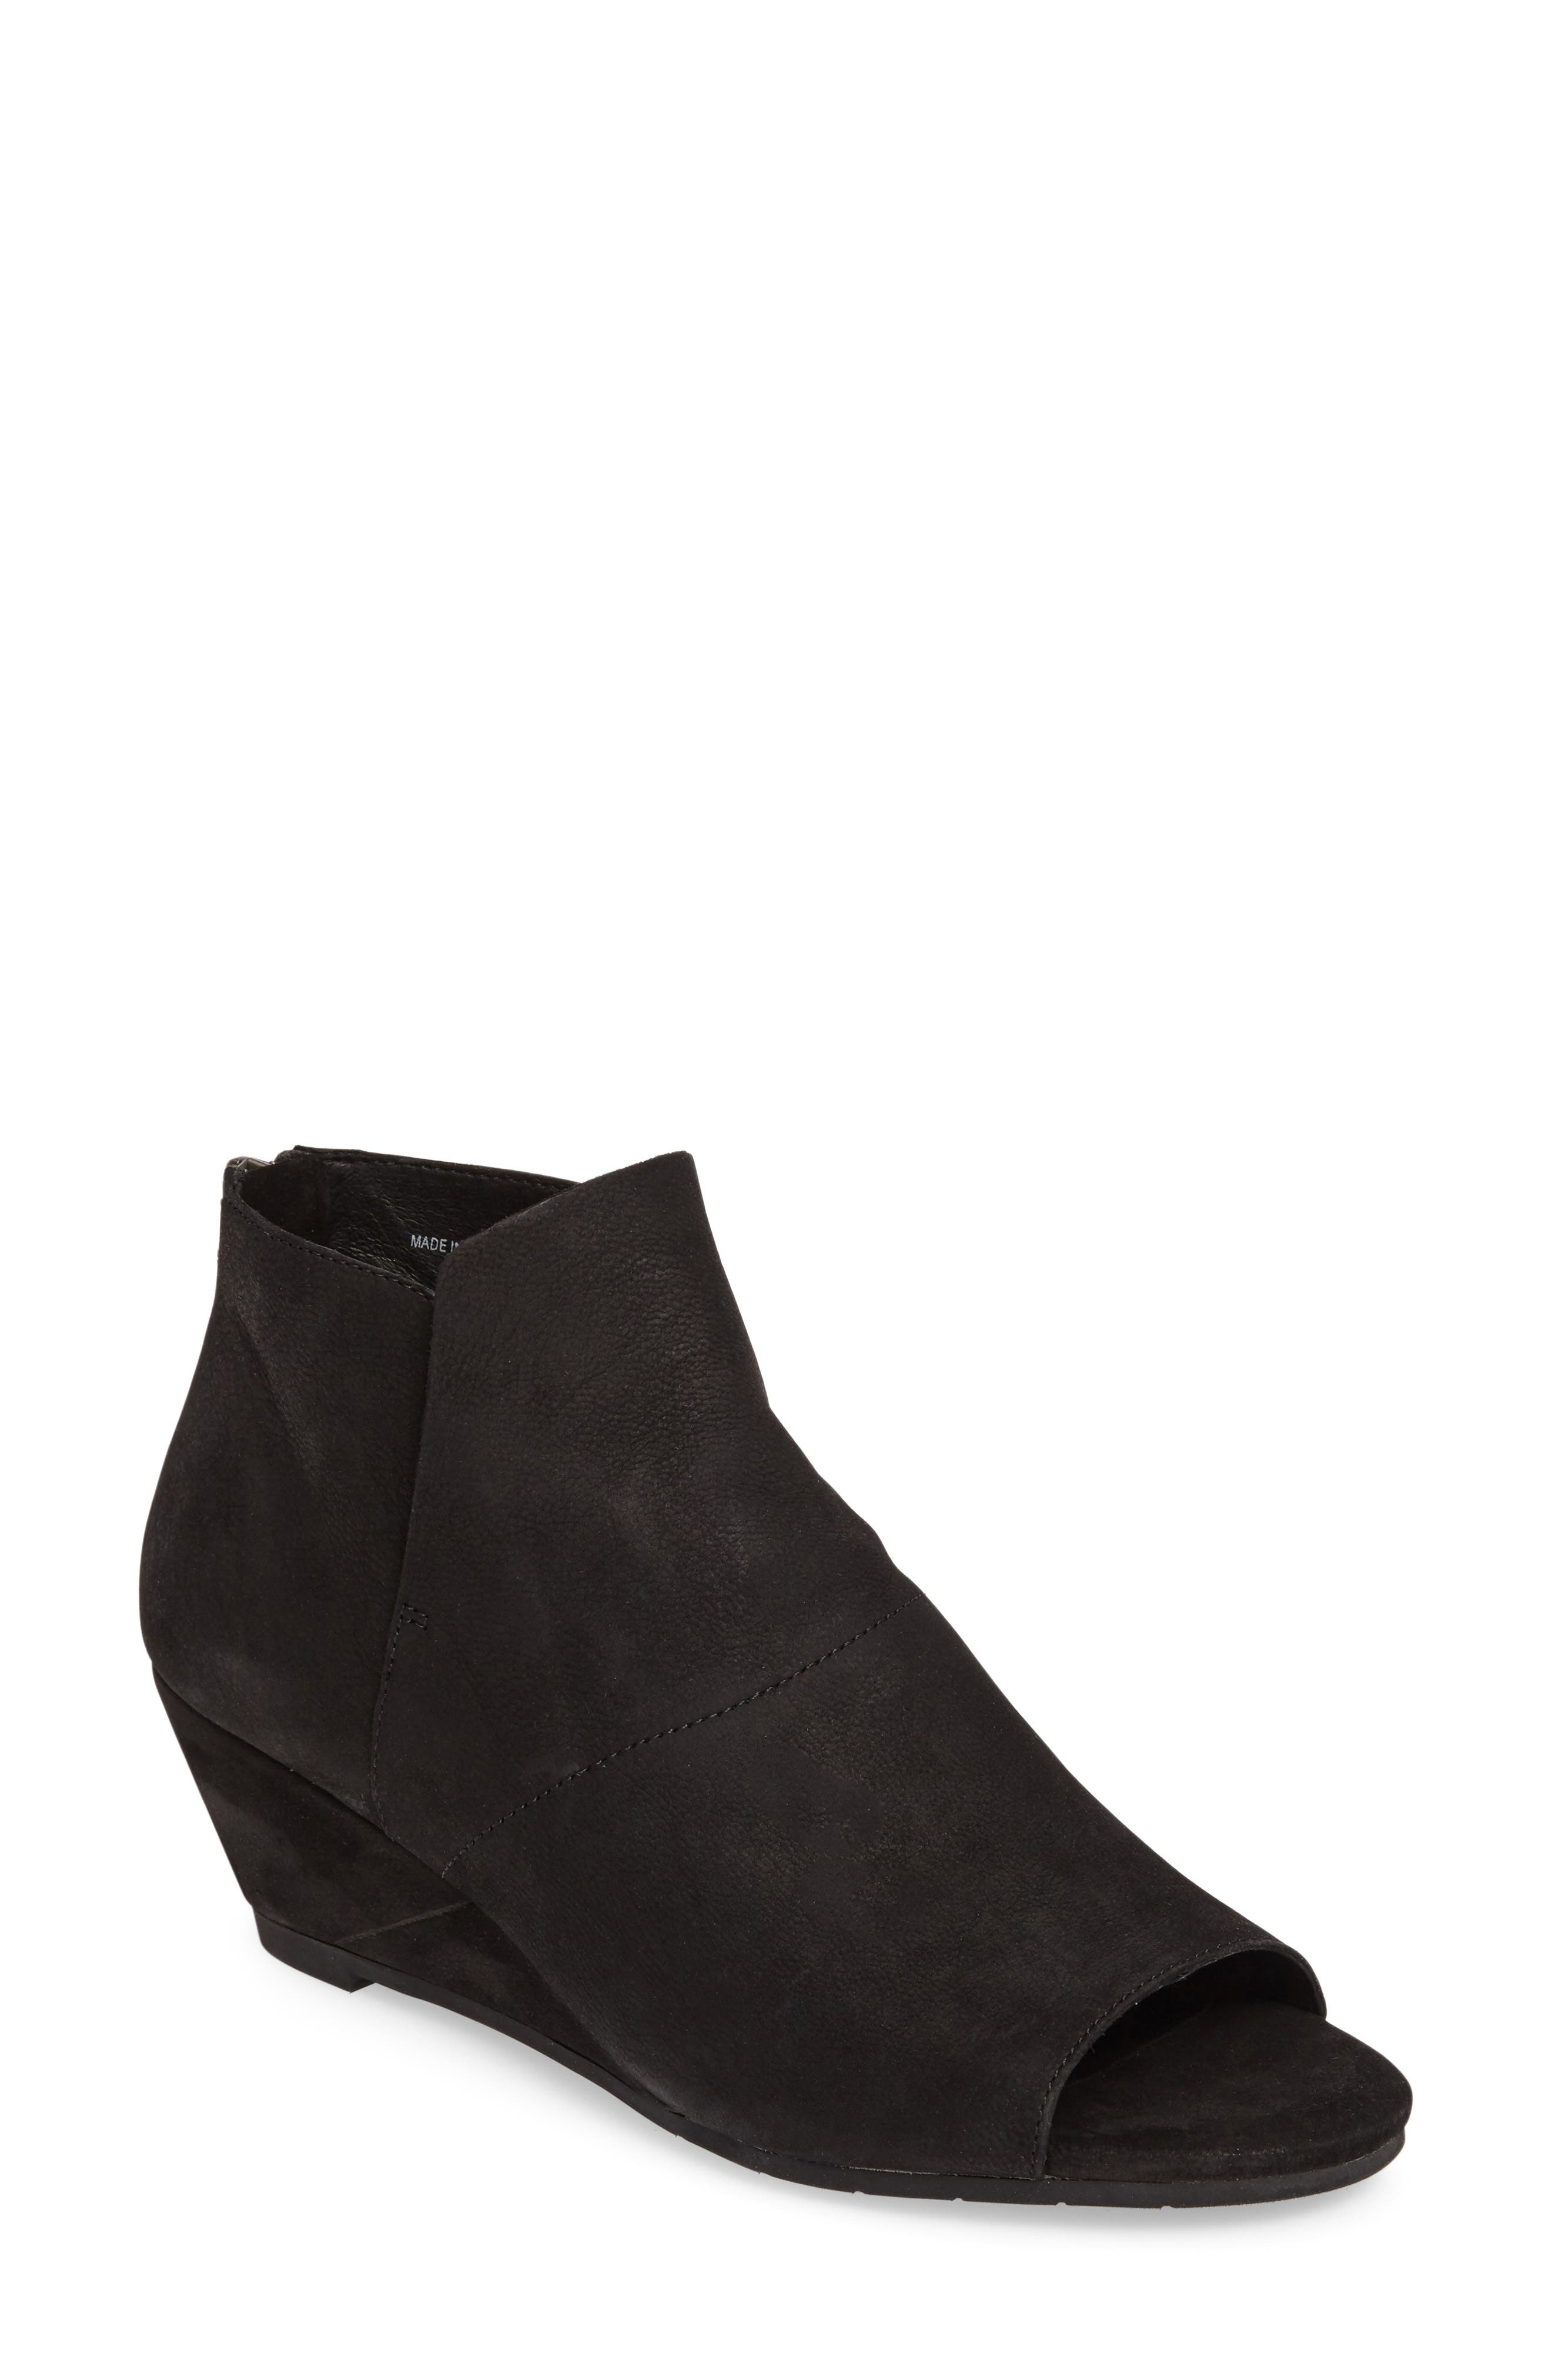 Duffy Open Toe Wedge Bootie,                             Main thumbnail 1, color,                             001